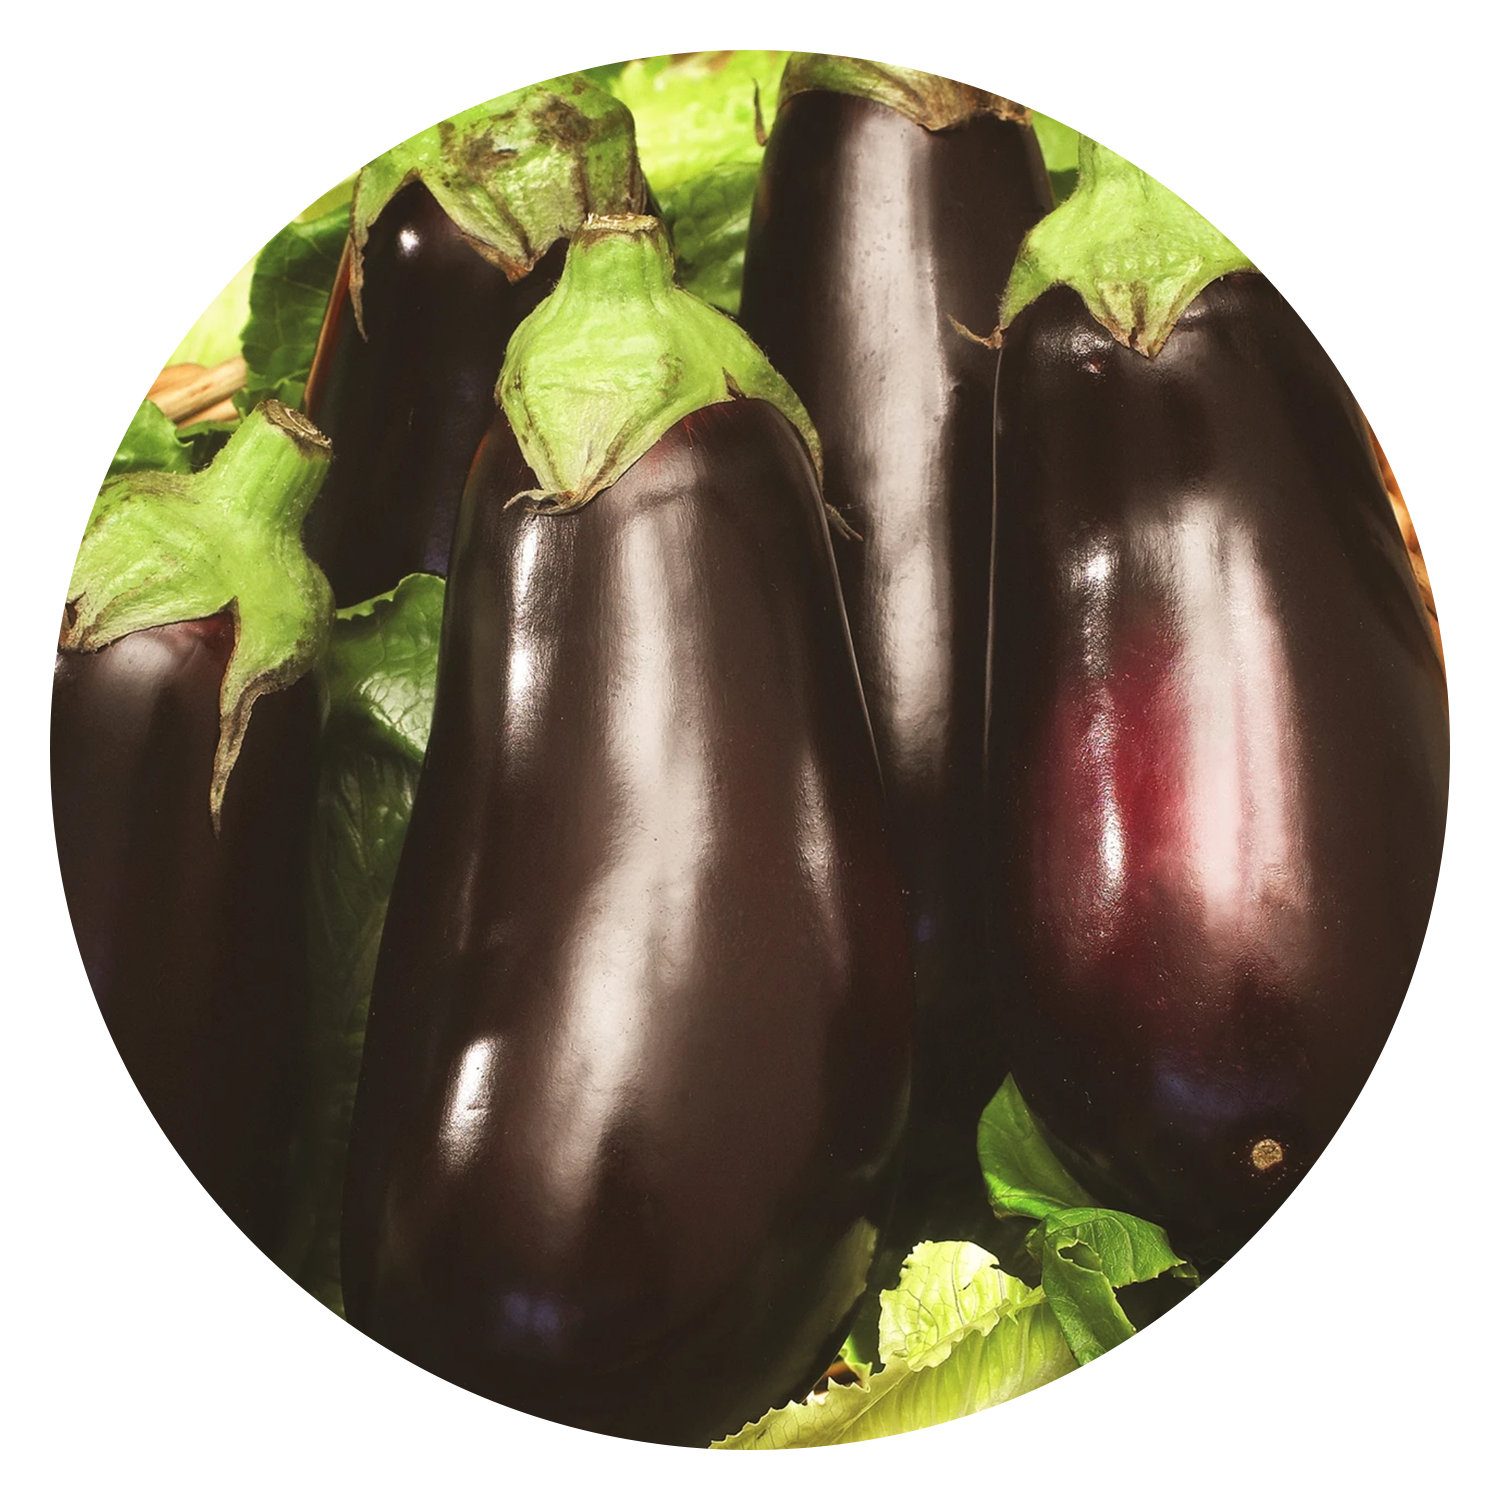 Heirloom Black Beauty Eggplant Seeds, link to product page.